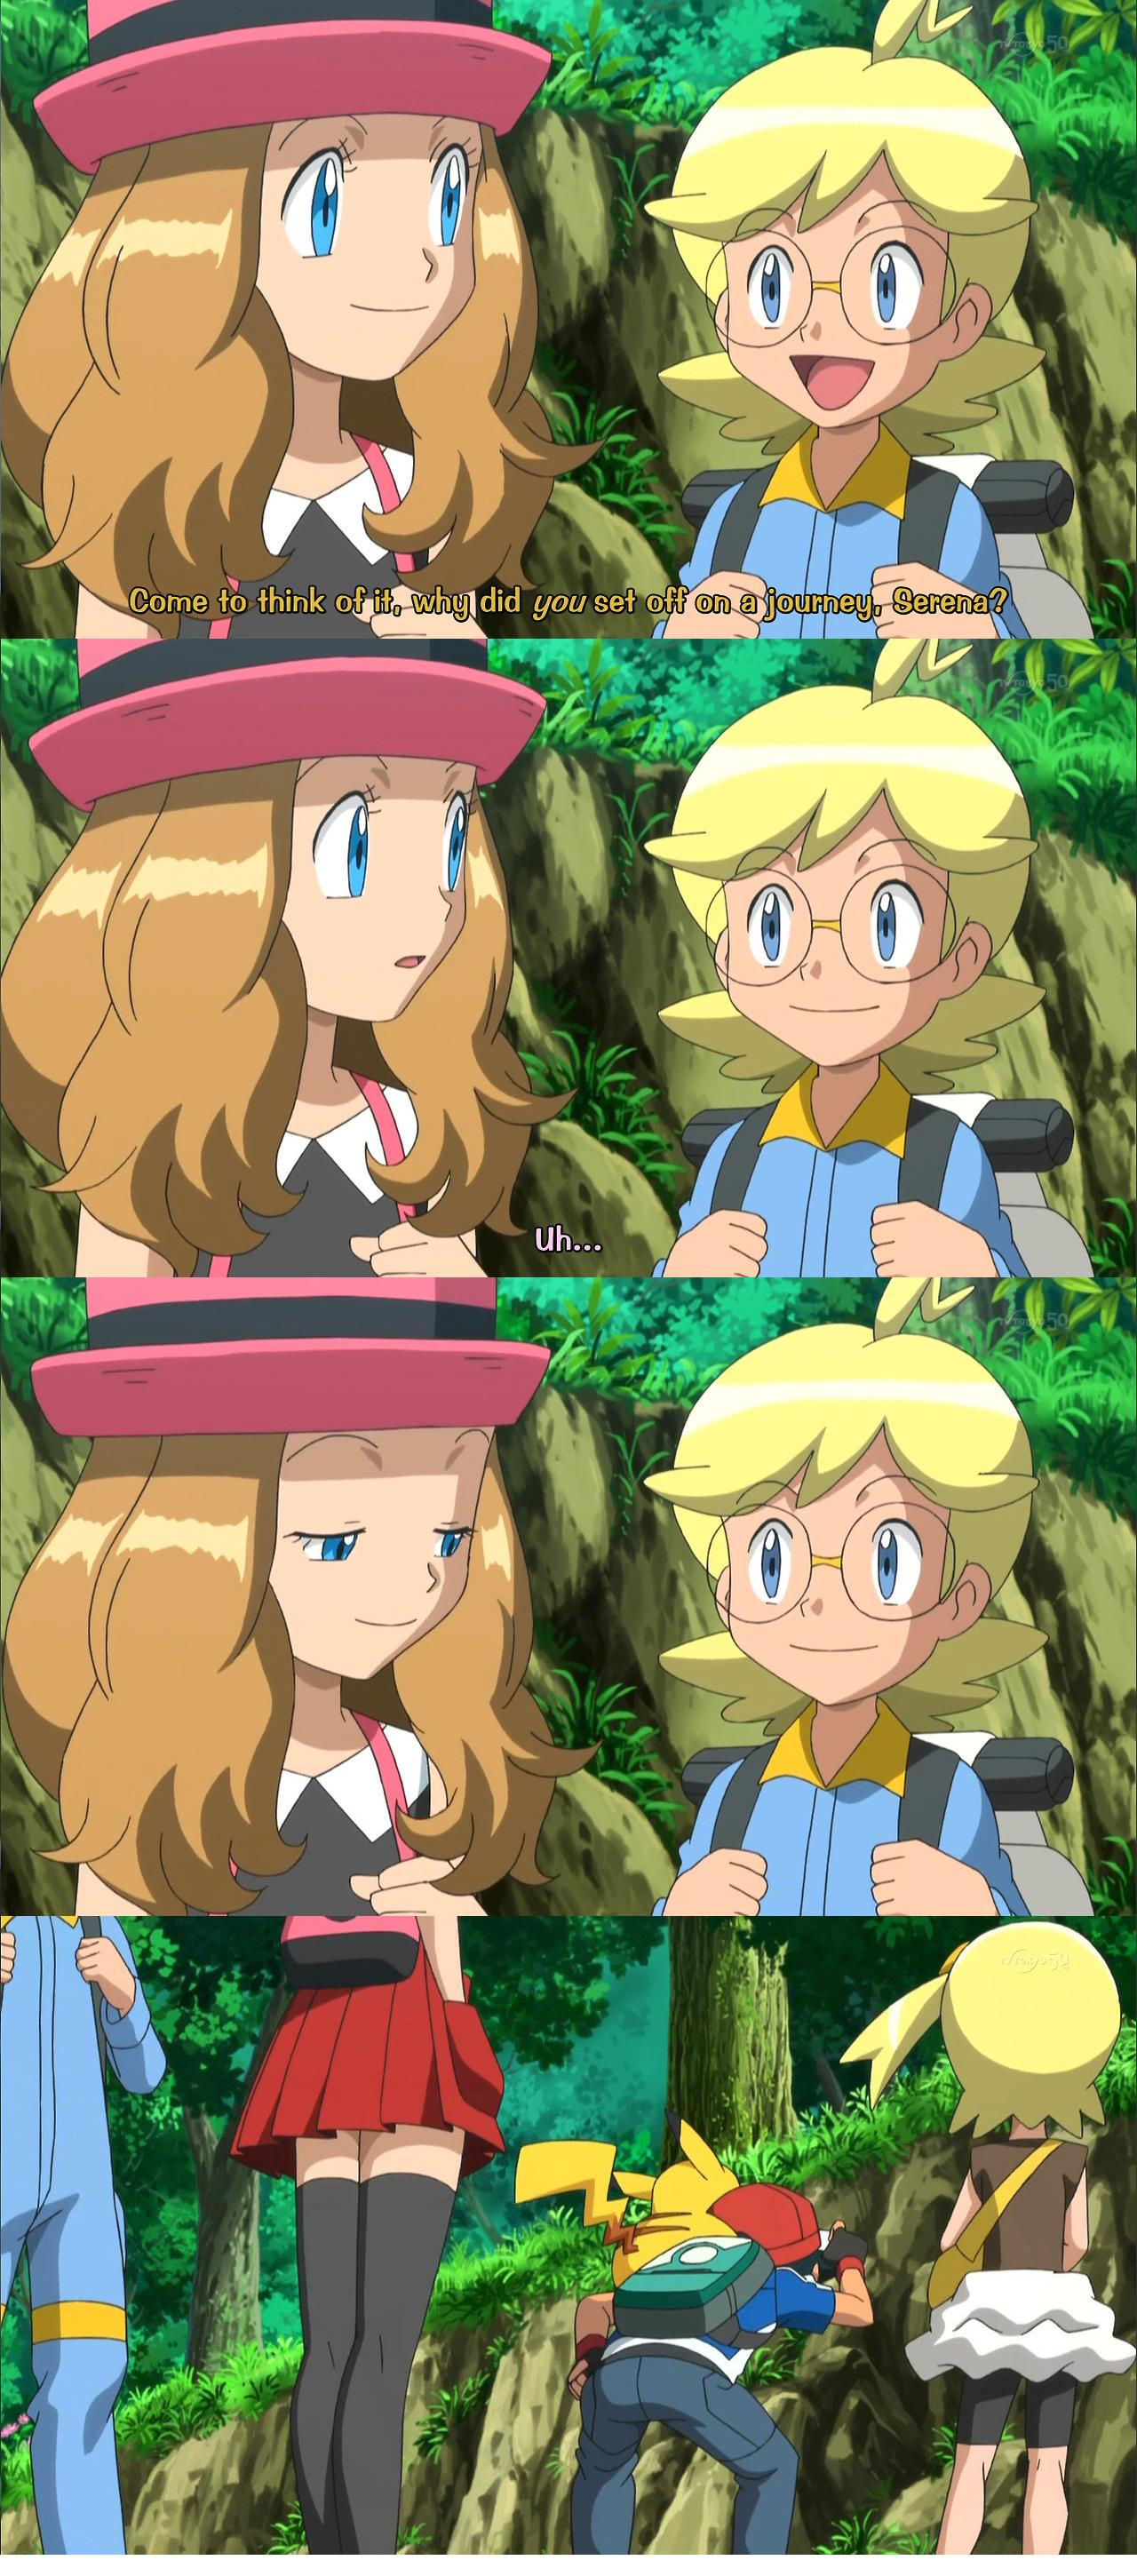 Serena Checks Out Ash's Behind While Daydreaming On ...